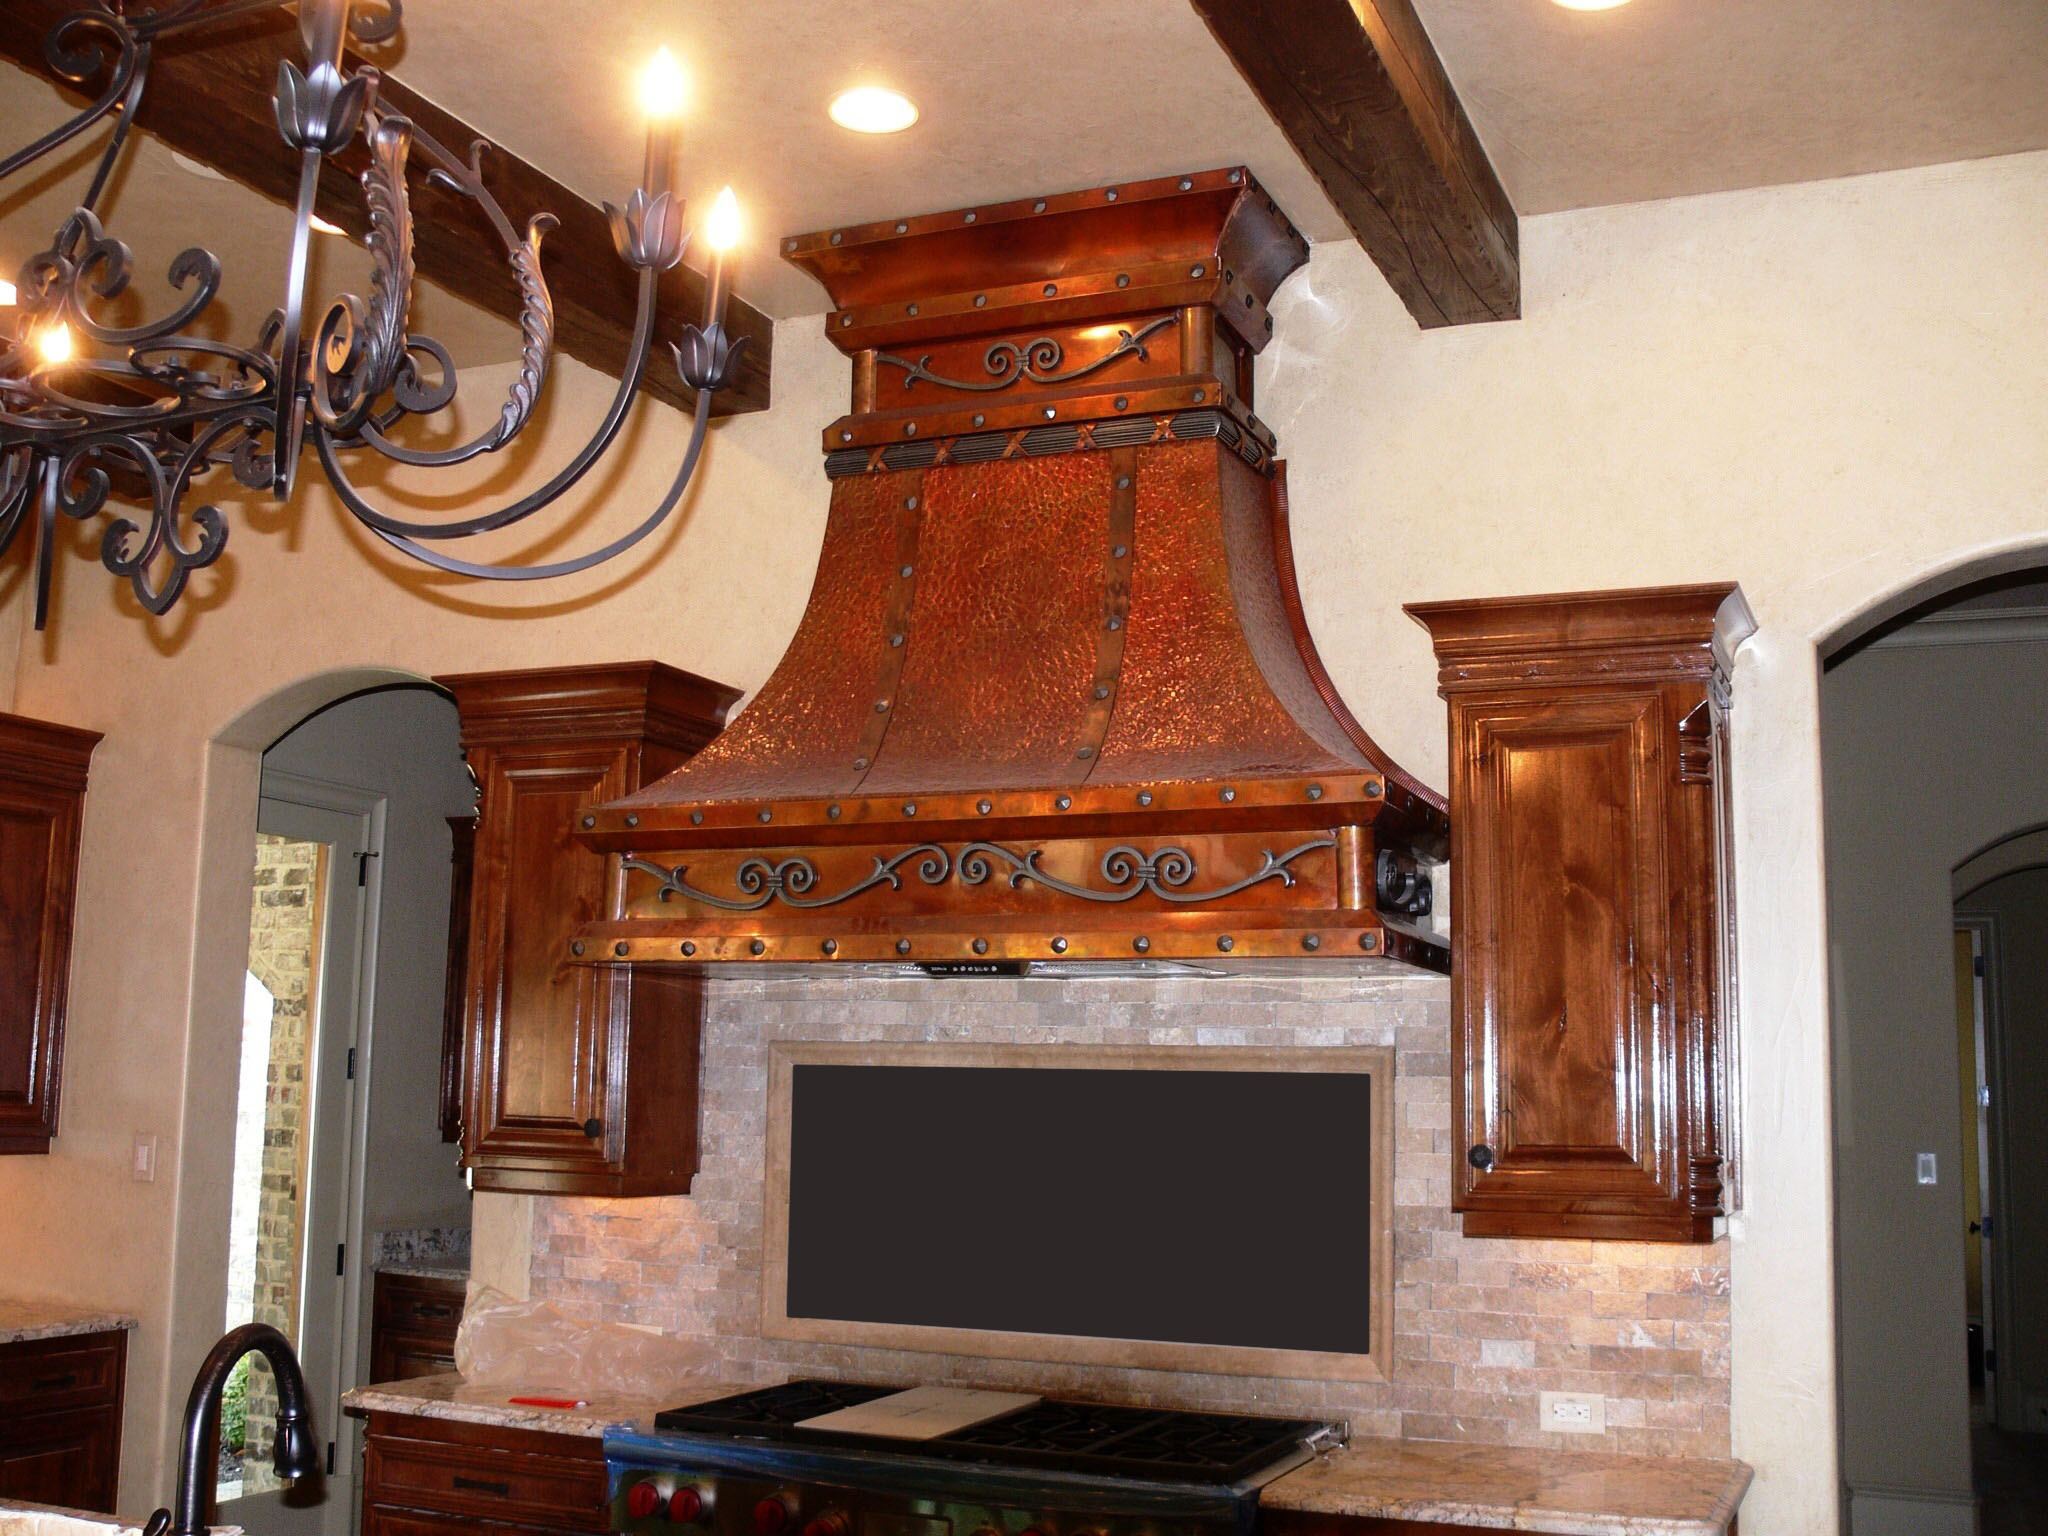 Range Hood 3 Old World Copper Range Hoods Copper Vent